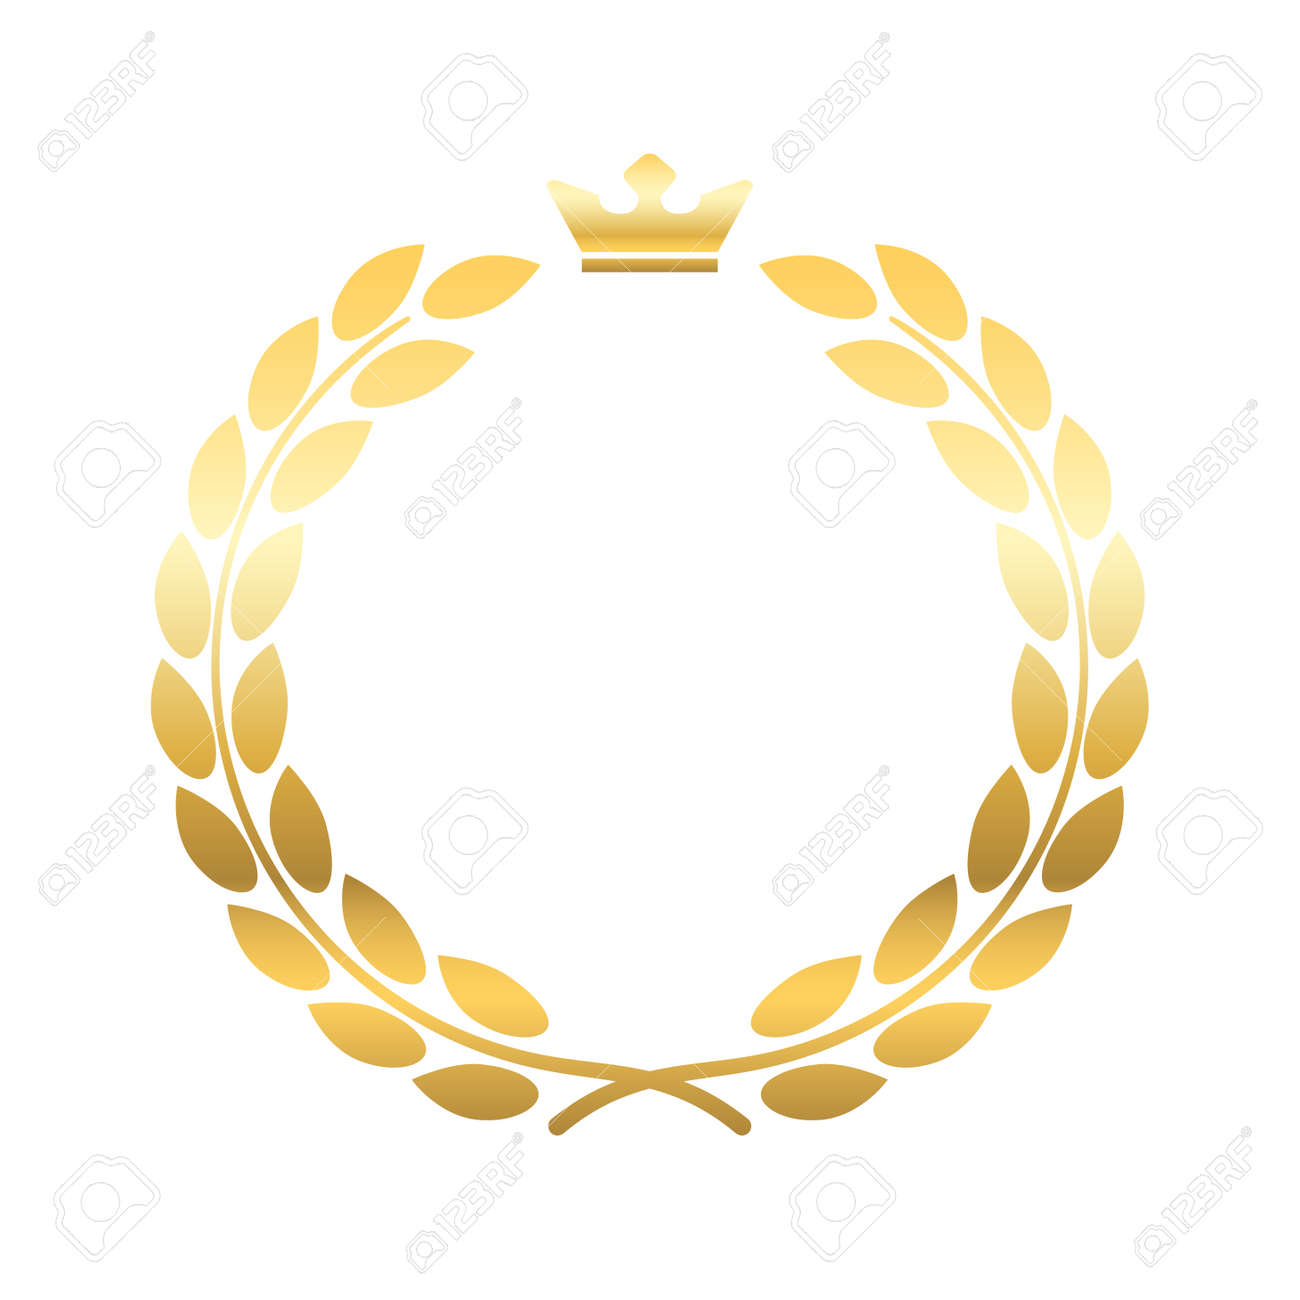 Gold Laurel Wreath With Crown Golden Leaf Emblem Vintage Design